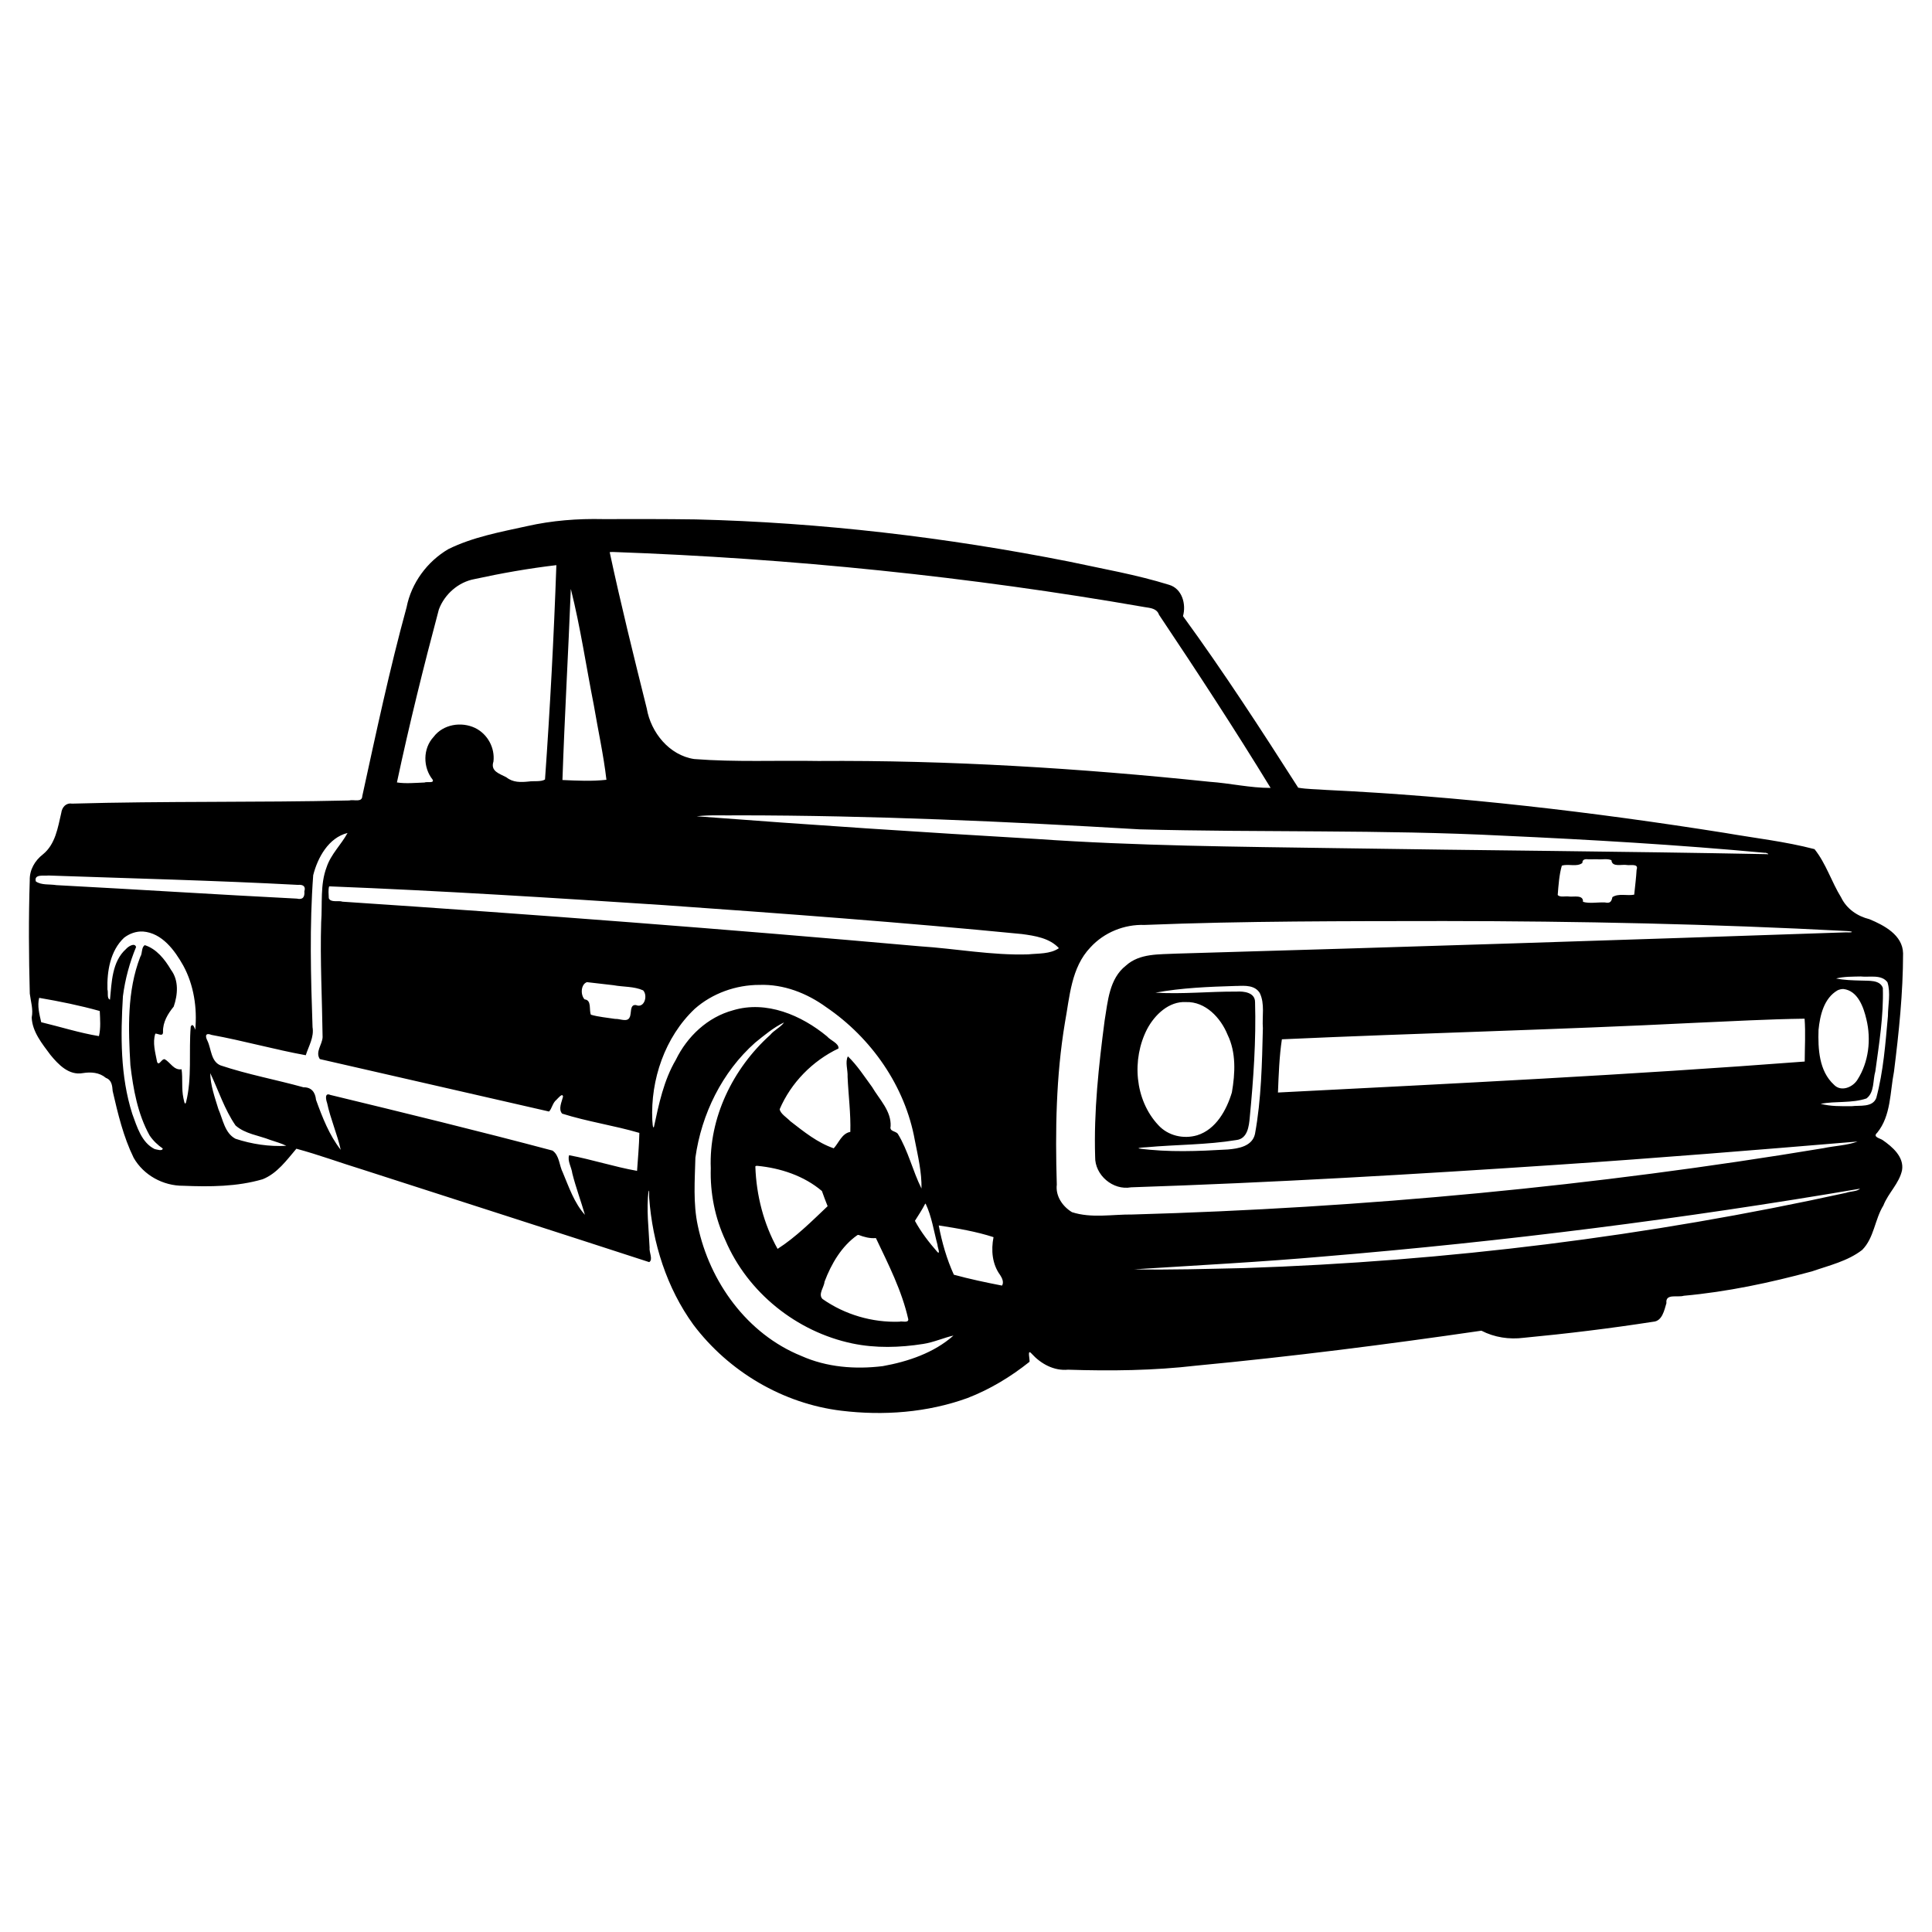 Chevy Dxf File.